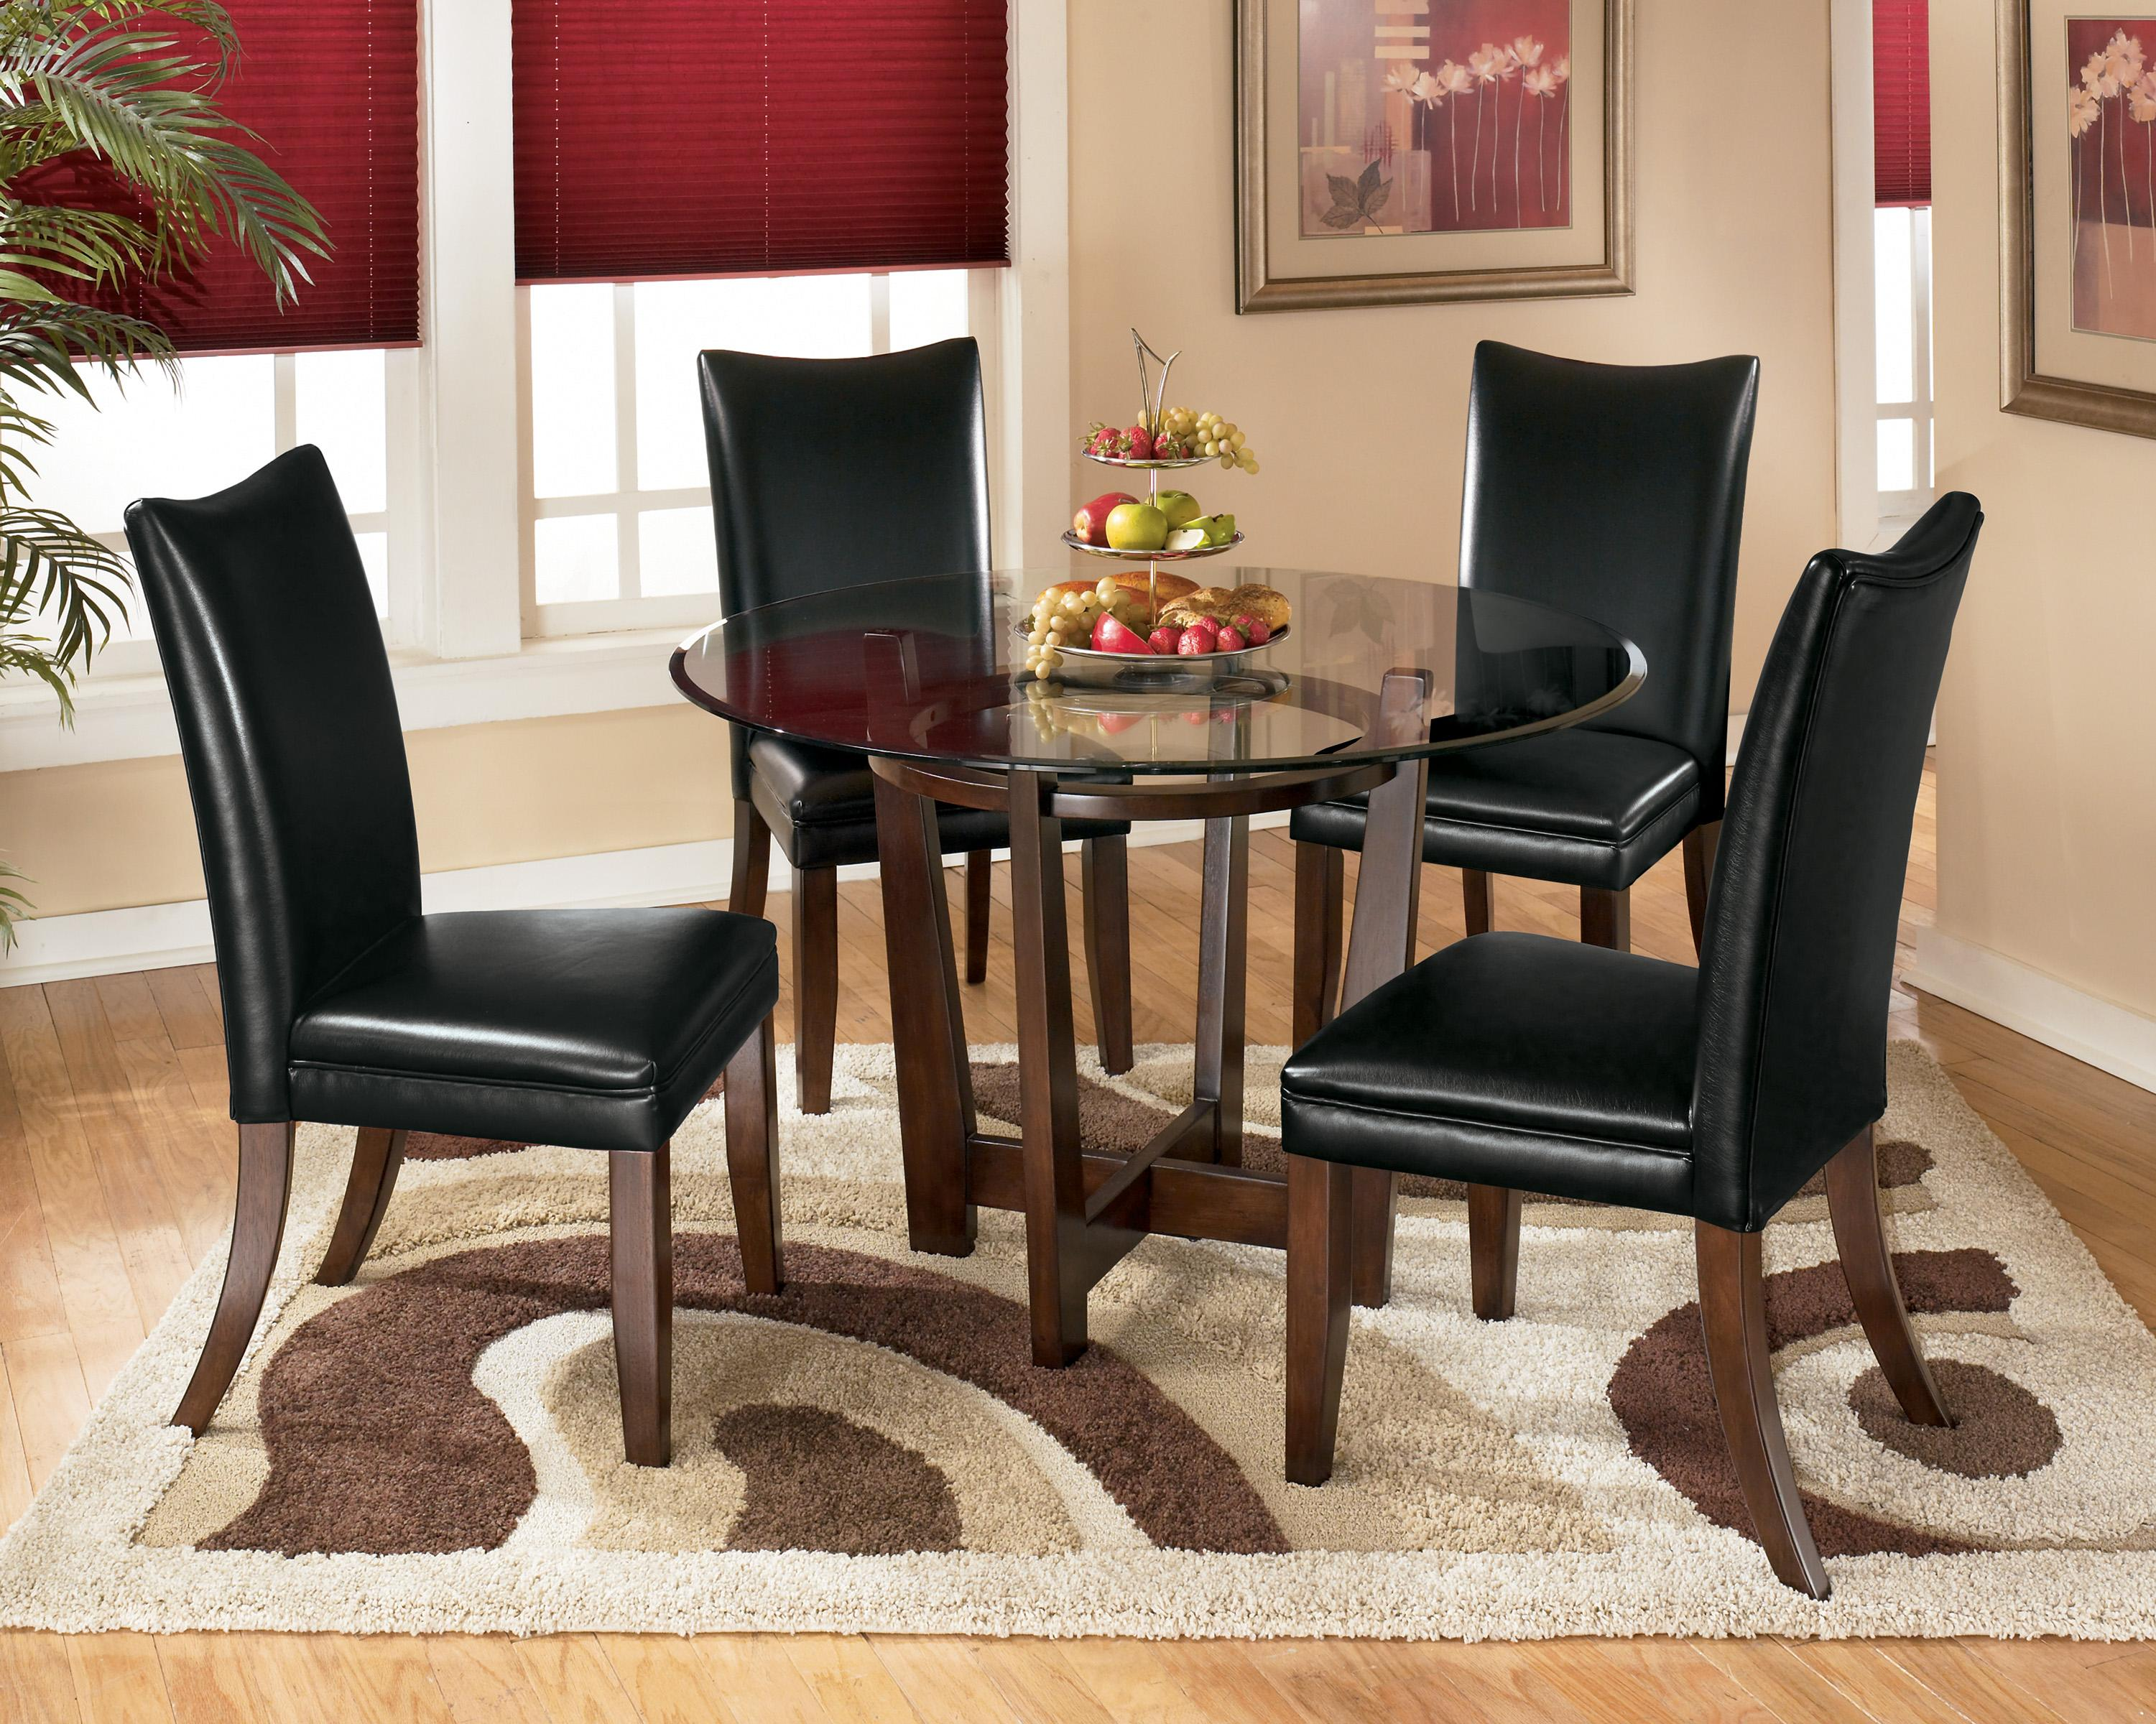 round living room set wood table lamps charrell 5 piece dining with black chairs by ashley signature design at dunk bright furniture